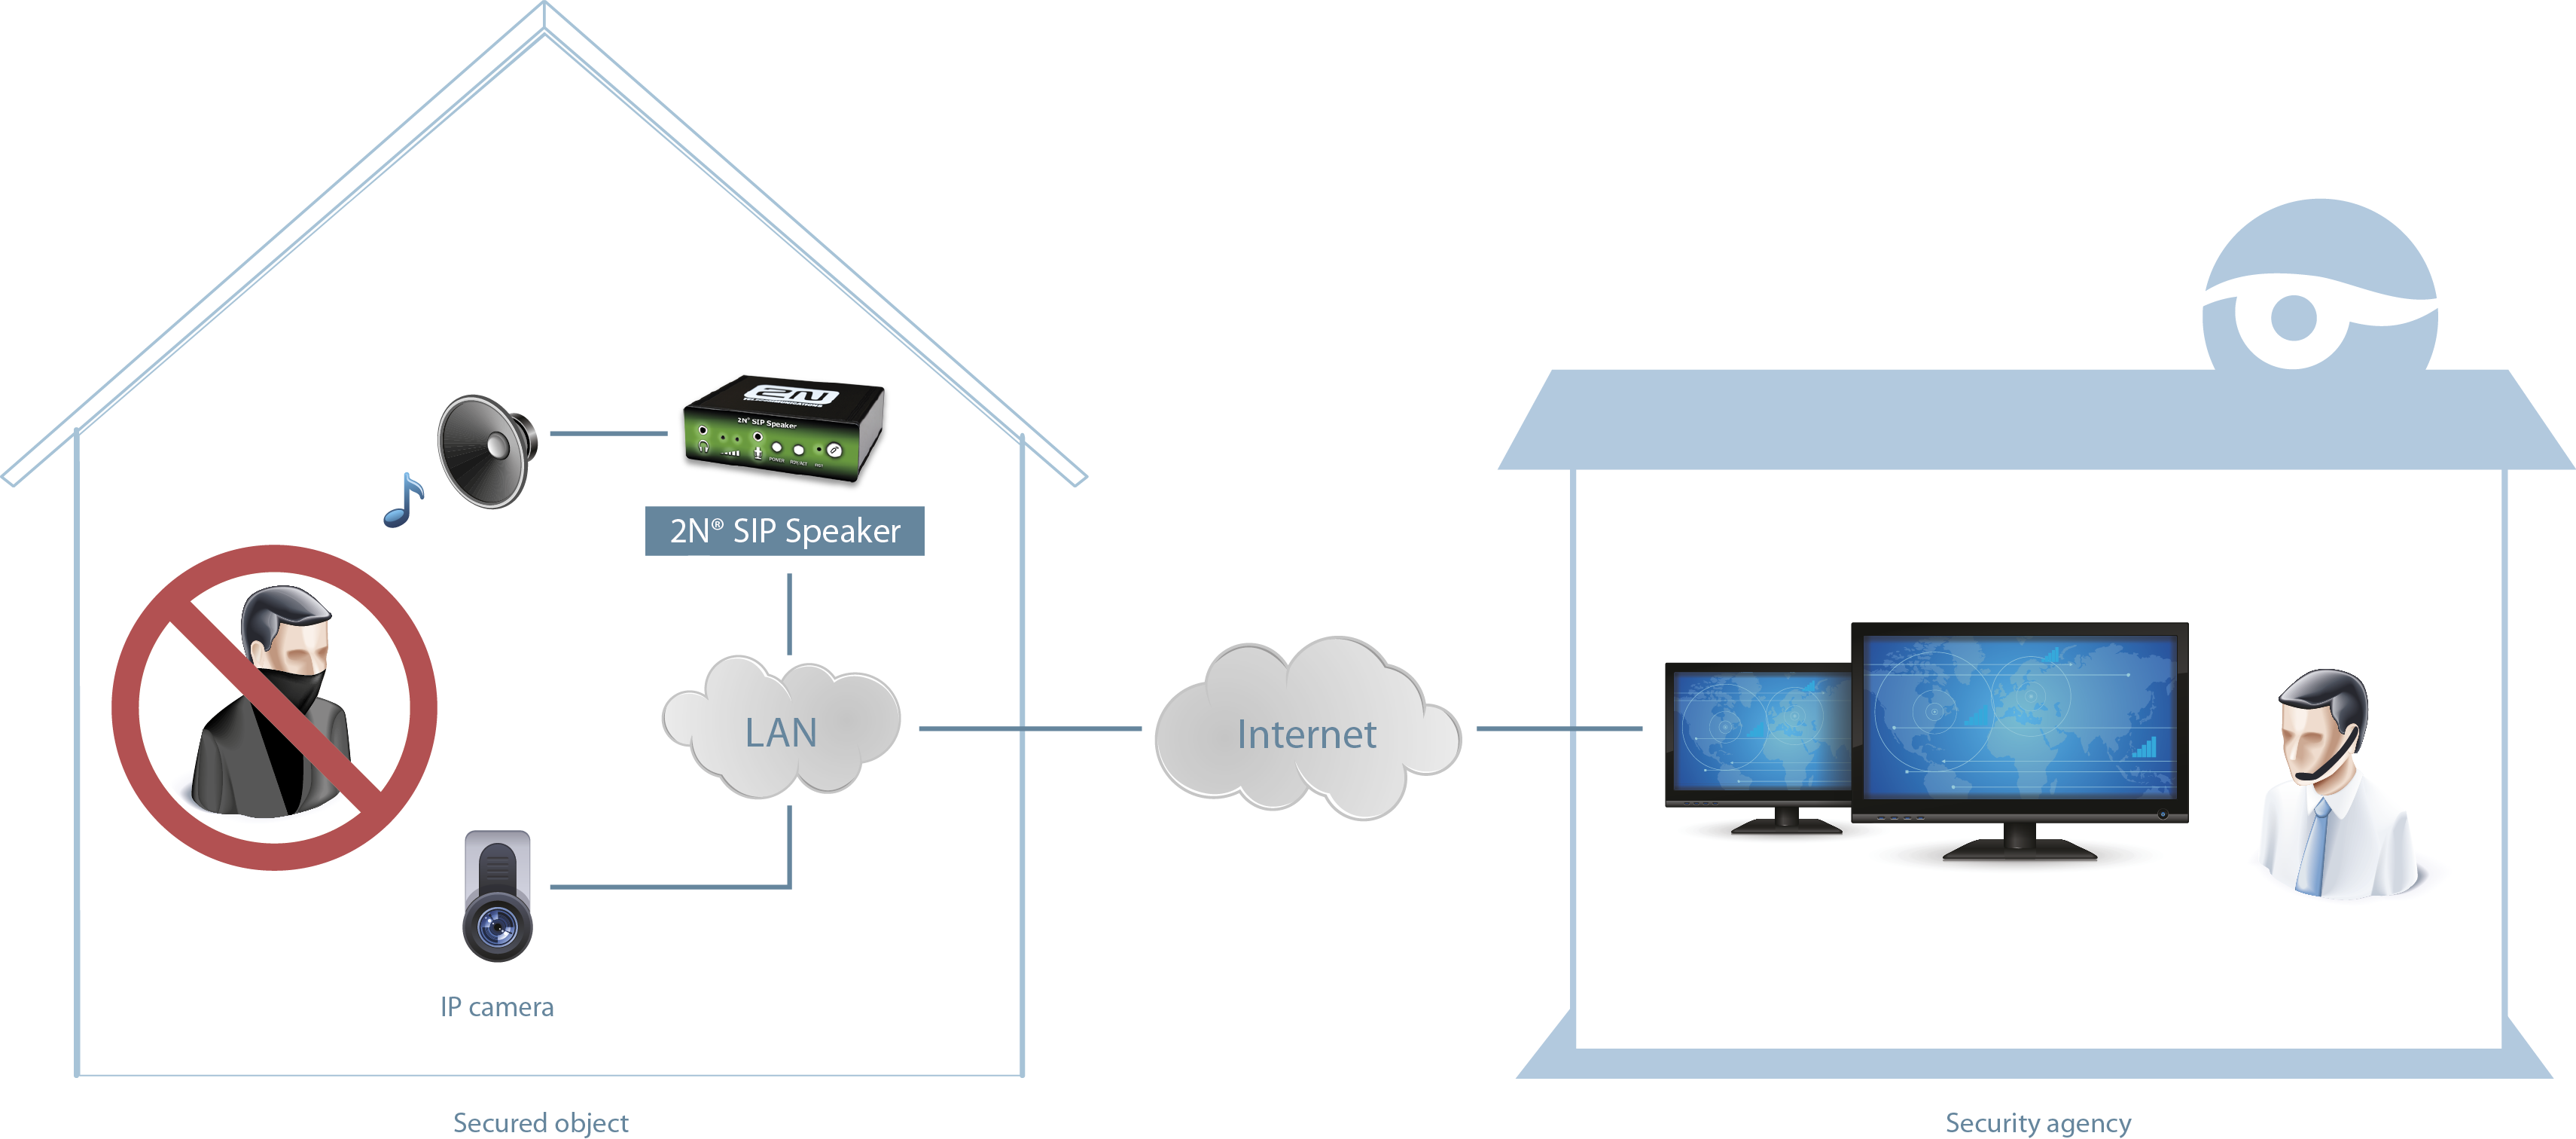 audio over ip for maximum interconnectivity 2nreg sip speaker system also allows communication other hardware on the network such as alarms switches and cameras